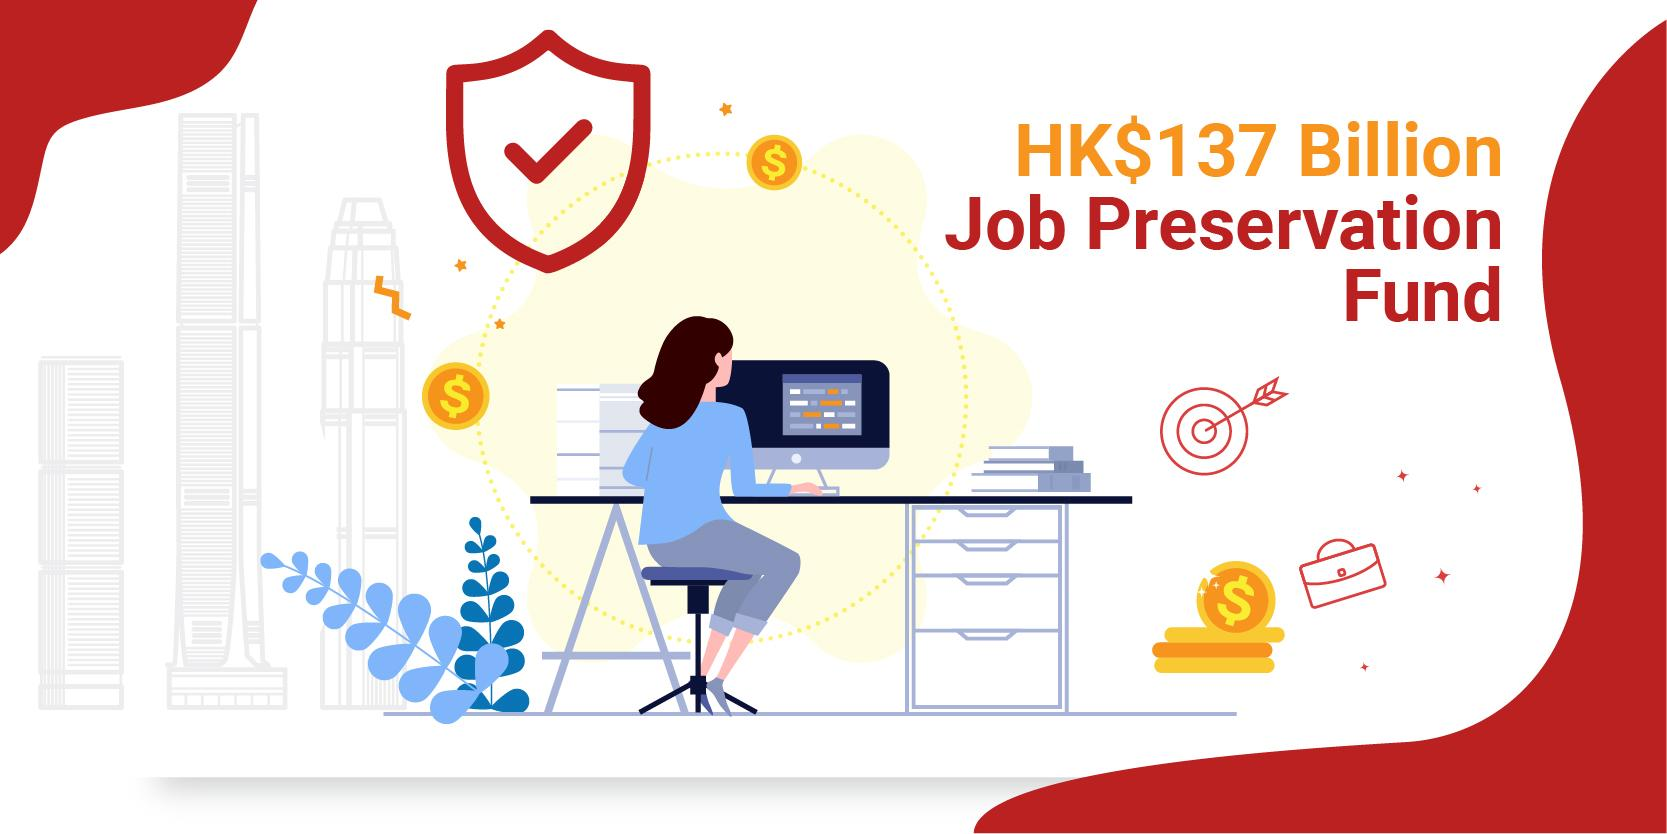 HK$137 Billion Job Preservation Fund